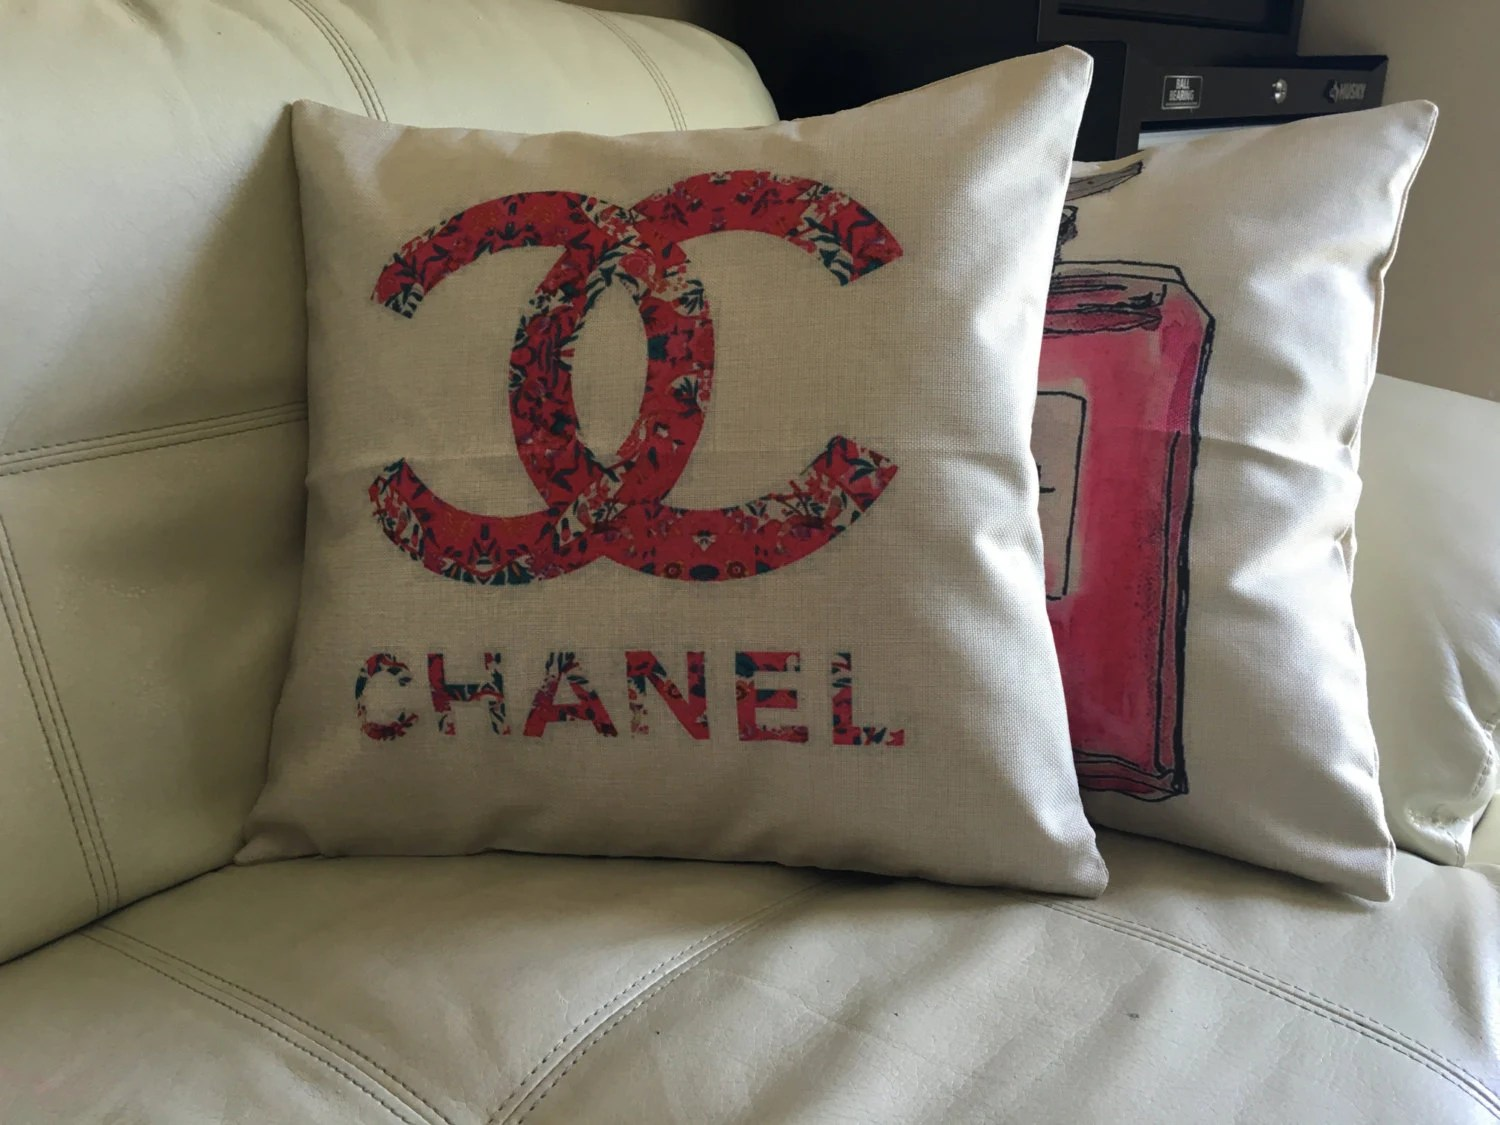 Chanel throw decorative pillow cover